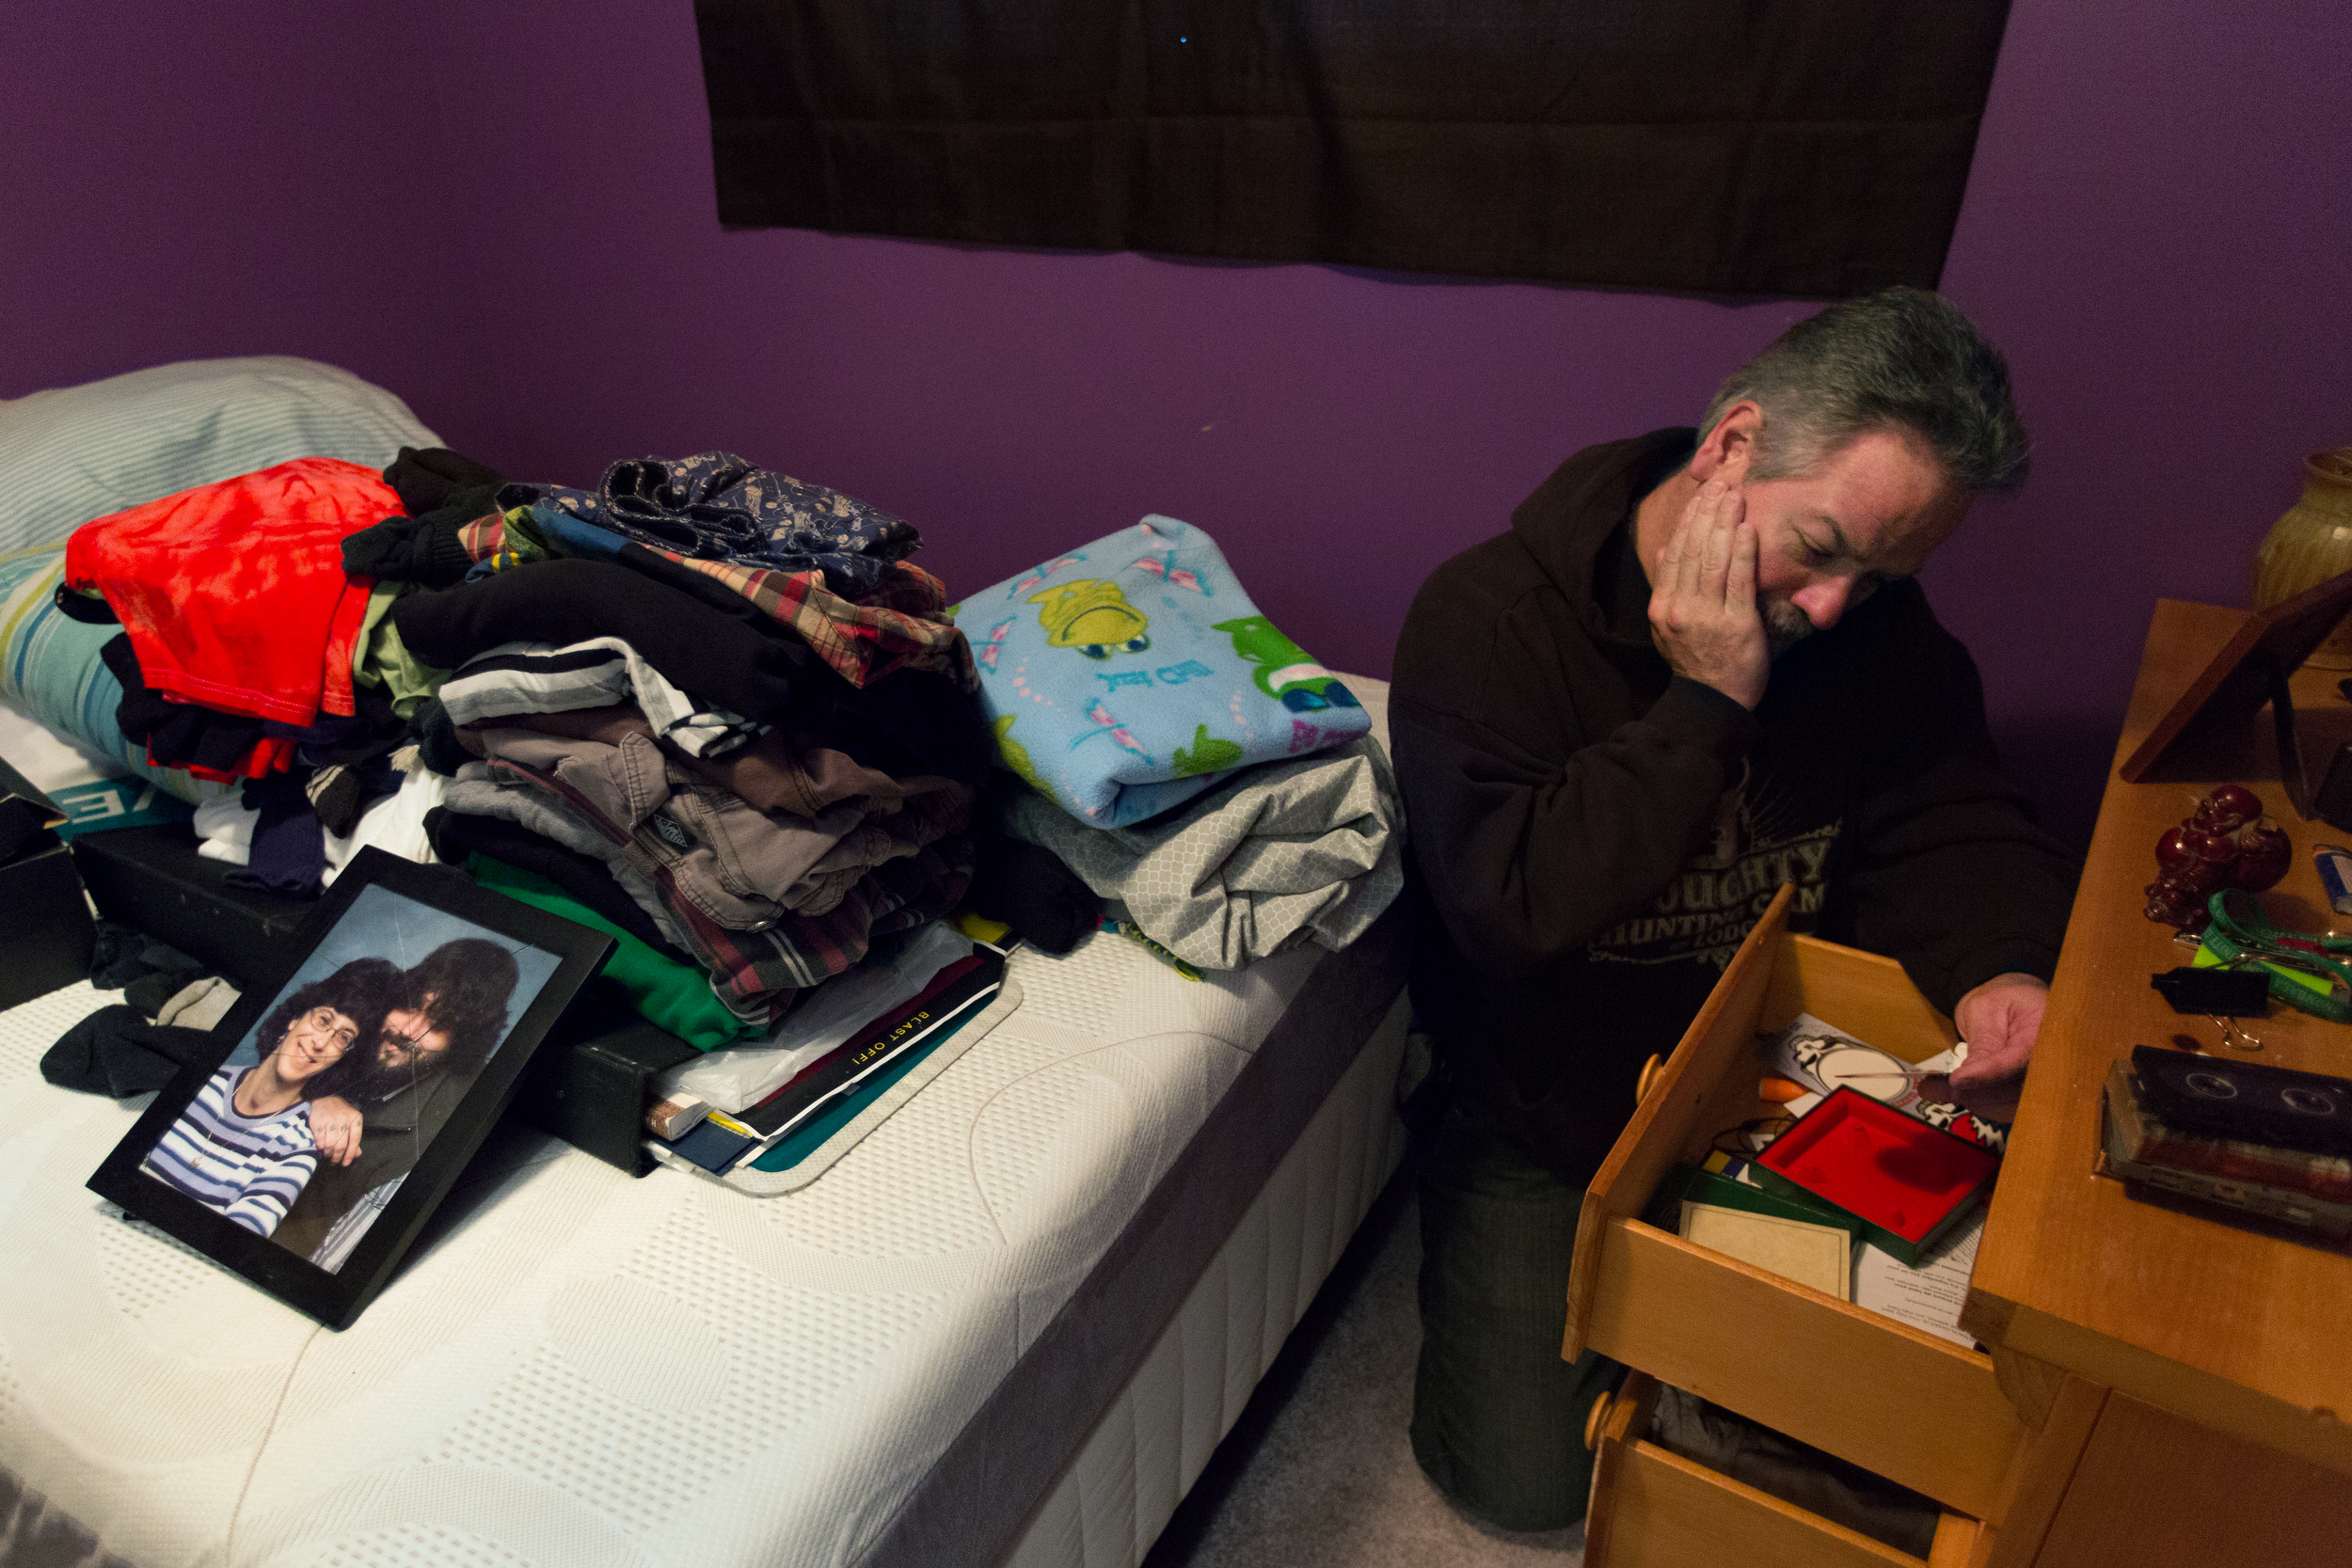 """Ron Doughty goes through Paul Doughty's dresser, finding heroin wrappers, needles, and q-tips on Nov. 17, 2015 in Bridgeport, N.Y. """"I am not ashamed of my son, he just had a disease,"""" said Ron. Paul died of a heroin overdose on Nov. 12, 2015."""